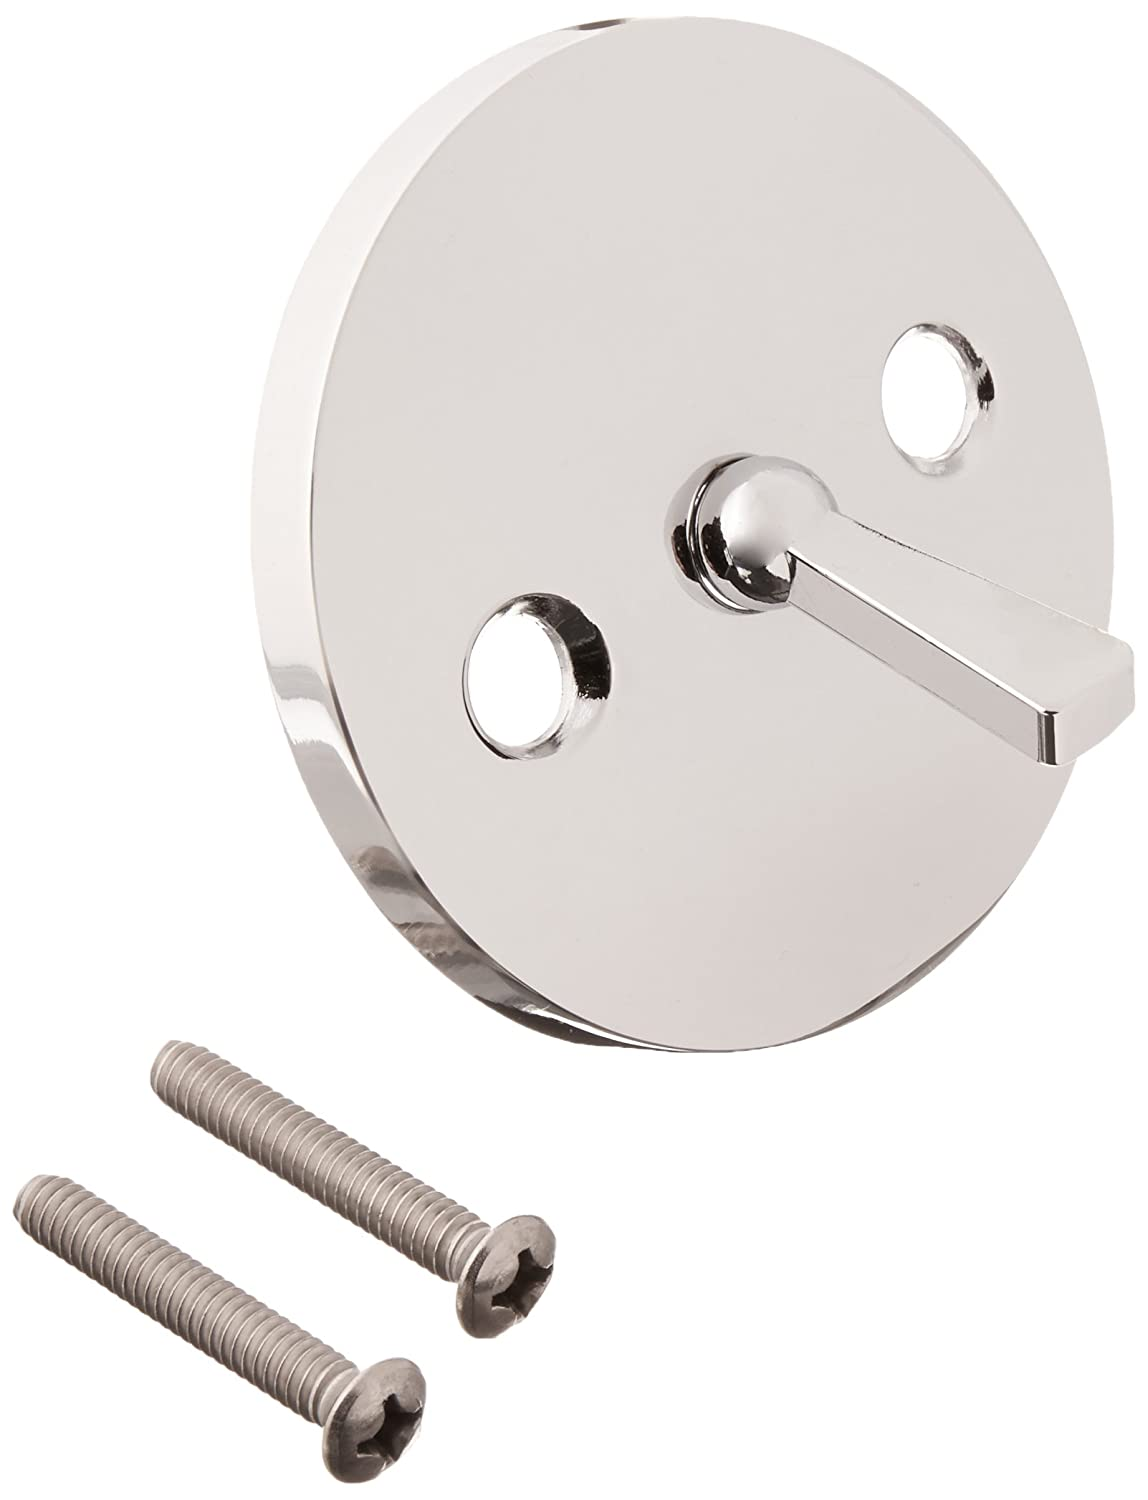 LASCO 03-1409 Bathtub Trip Lever Plate with Screws Oversized Style, Chrome Plated durable modeling